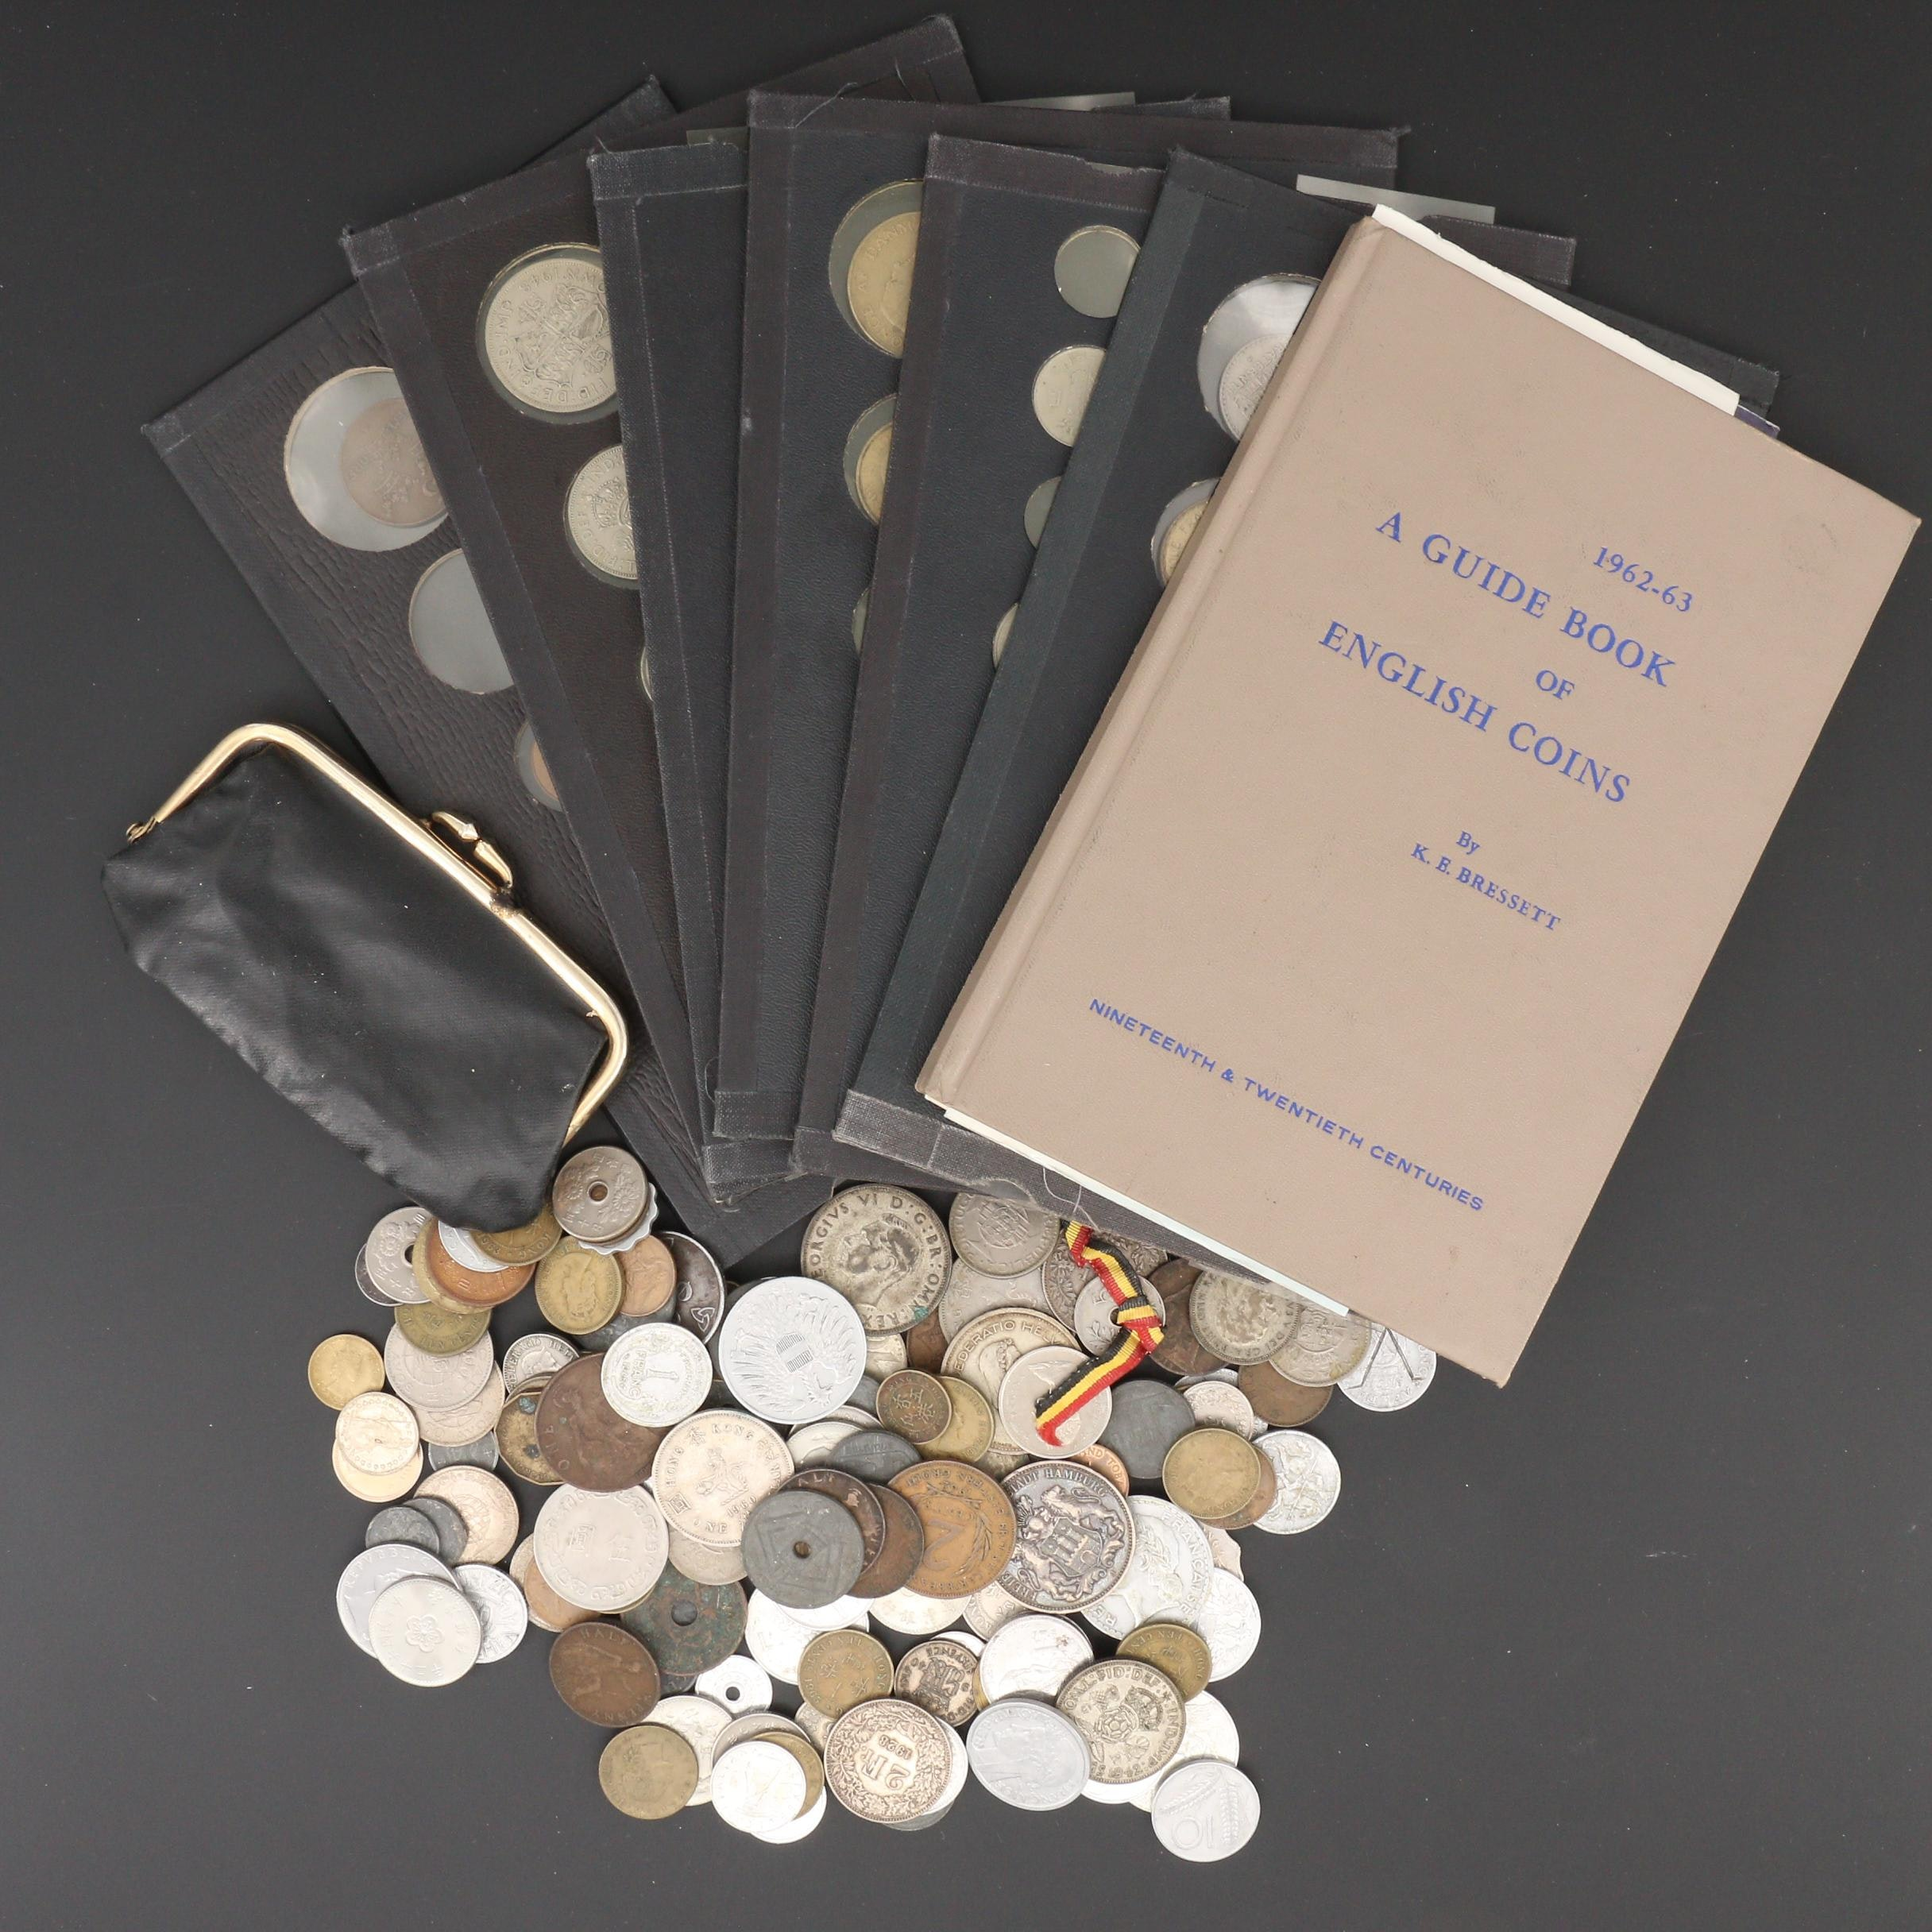 Group of Approximately 180 Foreign Coins Including a English Coin Guidebook